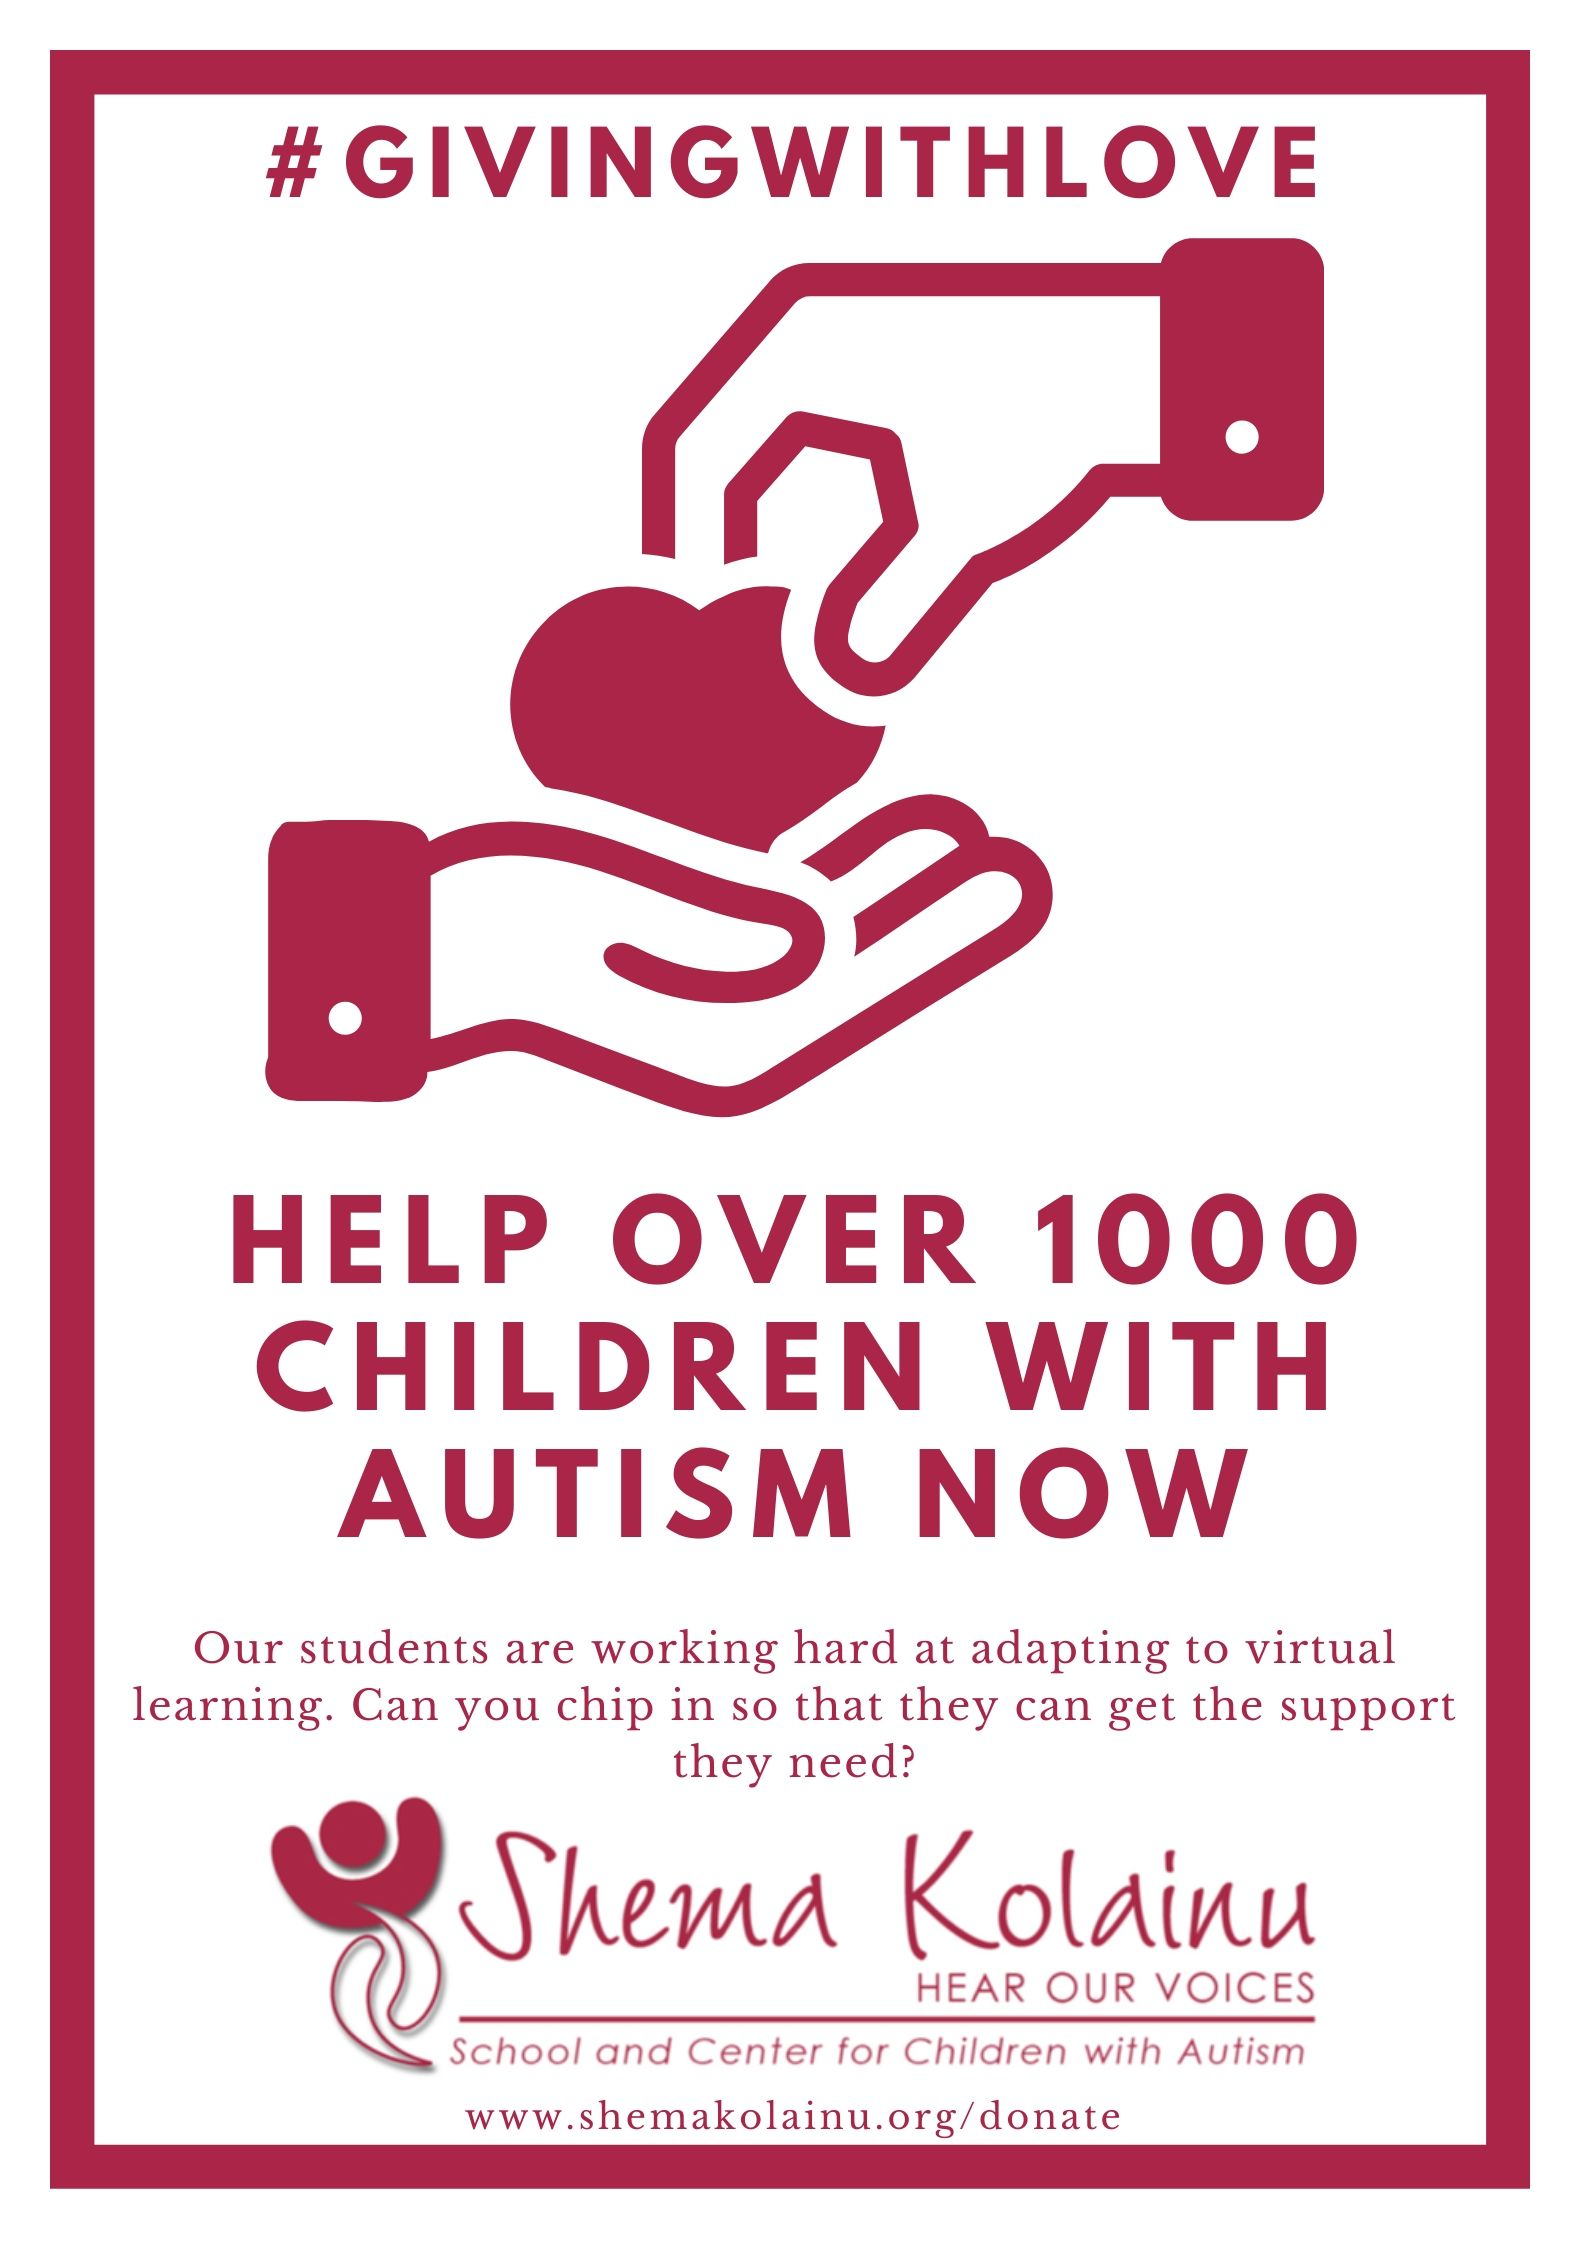 #Givingwithlove - Support over 1000 people with Autism by making a donation to Shema Kolainu - Hear Our Voices